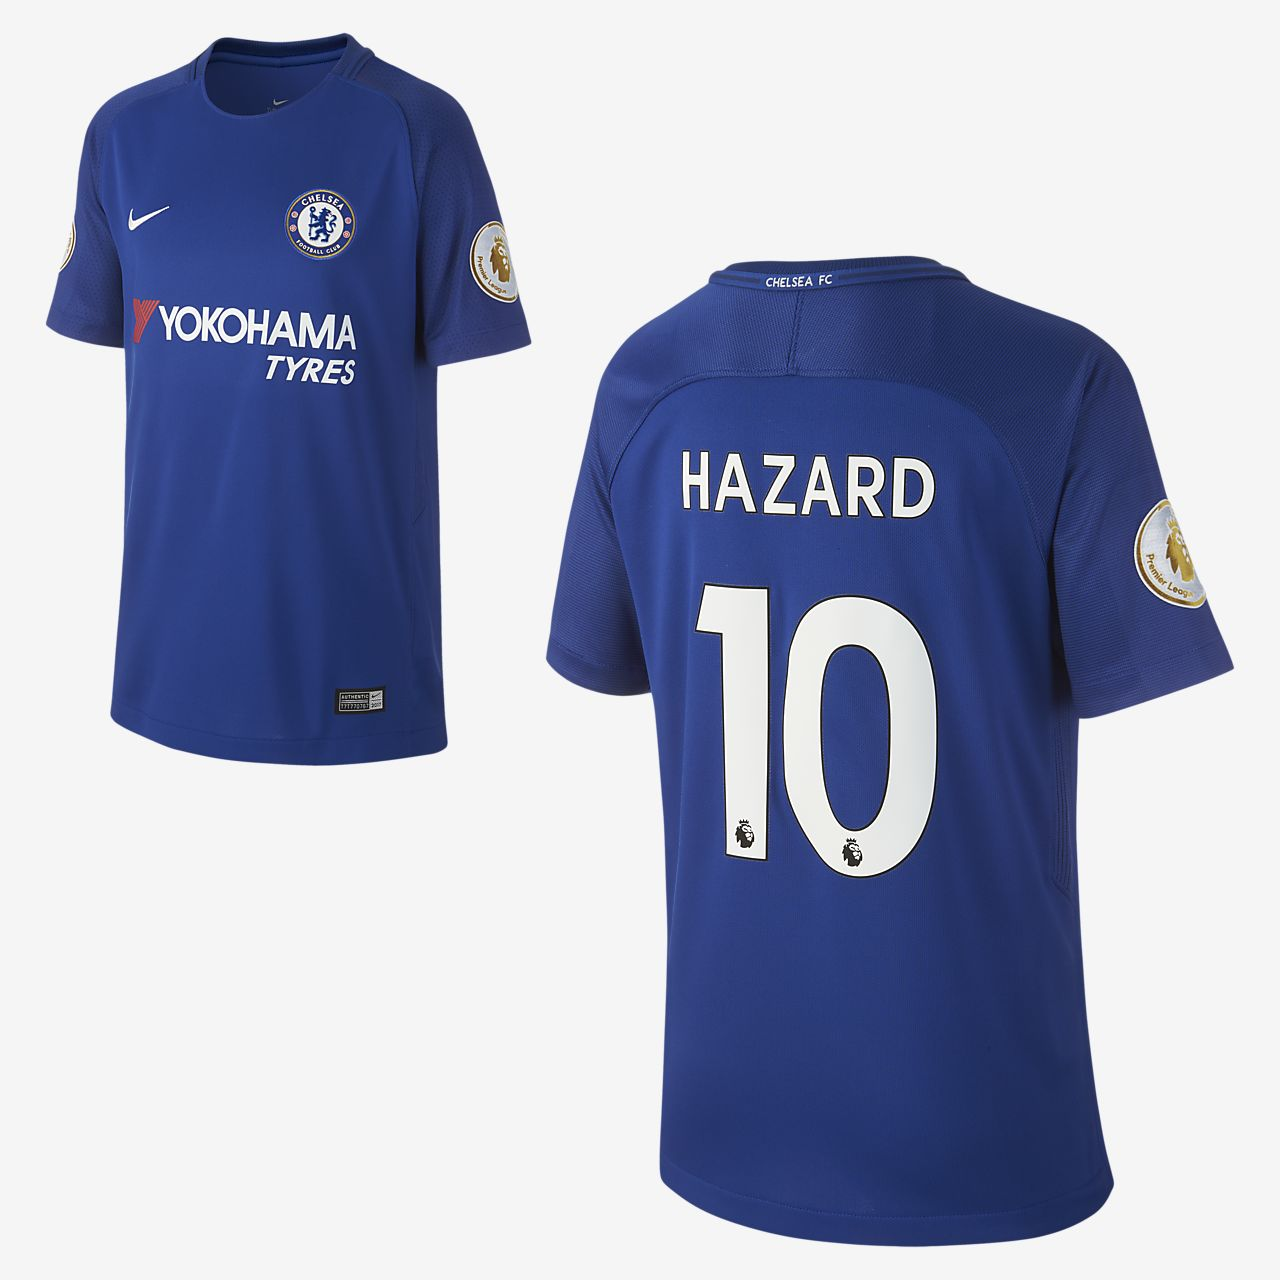 2017/18 Chelsea FC Stadium Home (Eden Hazard) Older Kids' Football Shirt